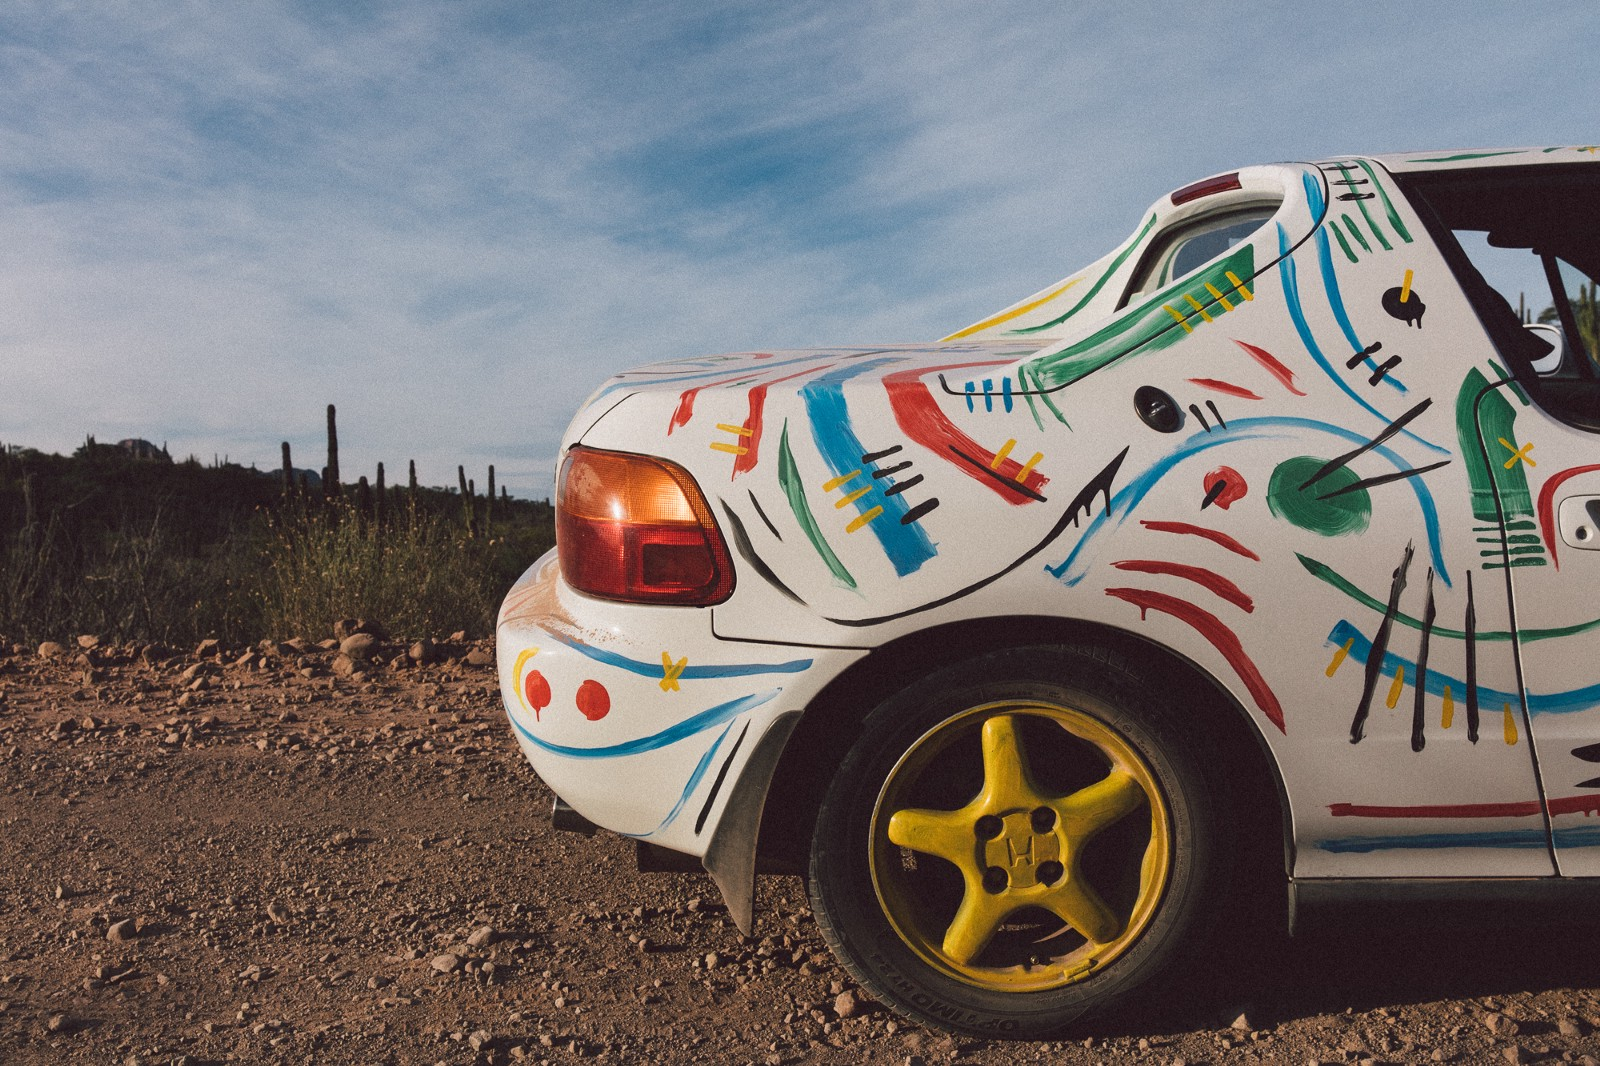 The backside of the Honda Del Sol I painted 'crazy' shot somewhere in Baja, Mexico by  Daniel N. Johnson